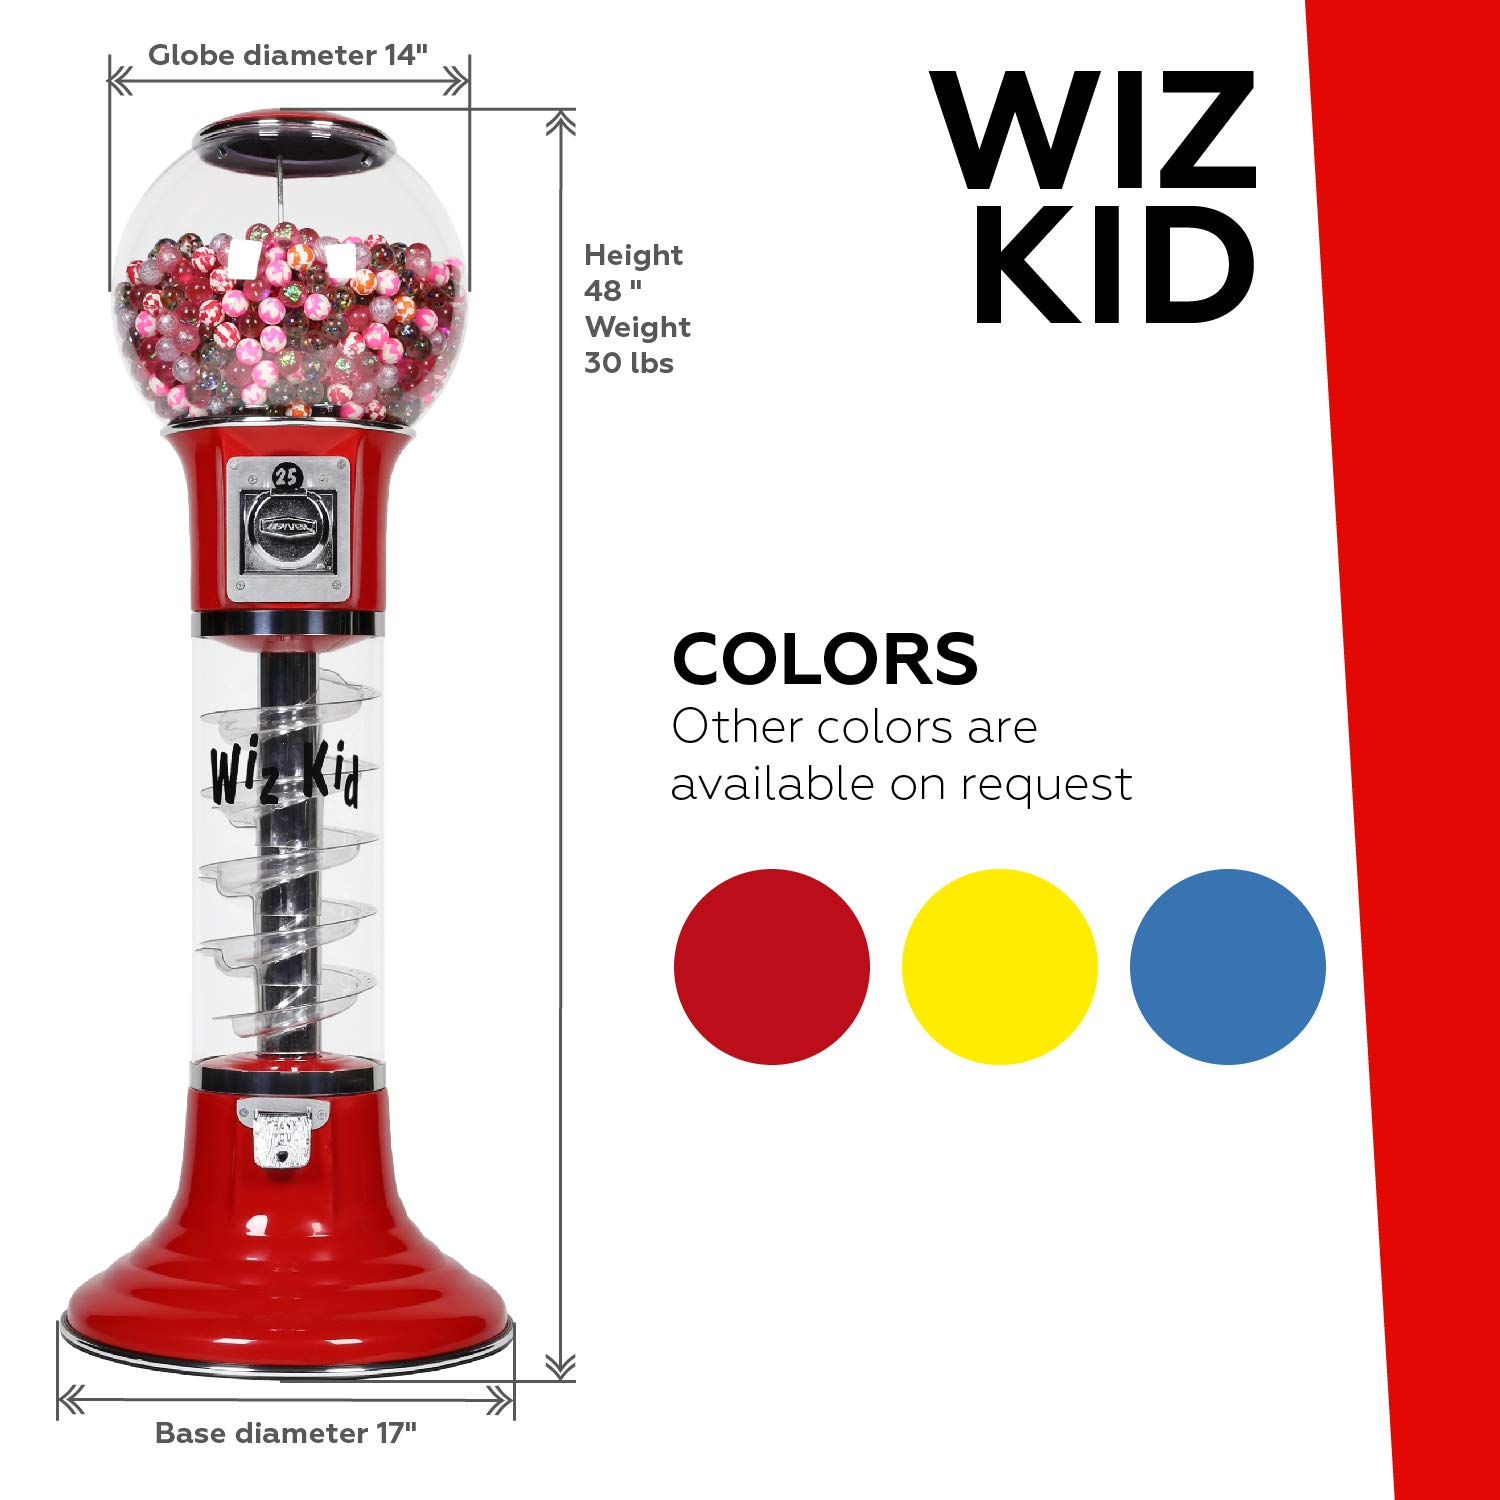 Wiz-Kid Wizard Spiral Gumball Vending Machine Height 4' - $0.25 - (Blue) by Global Gumball (Image #2)